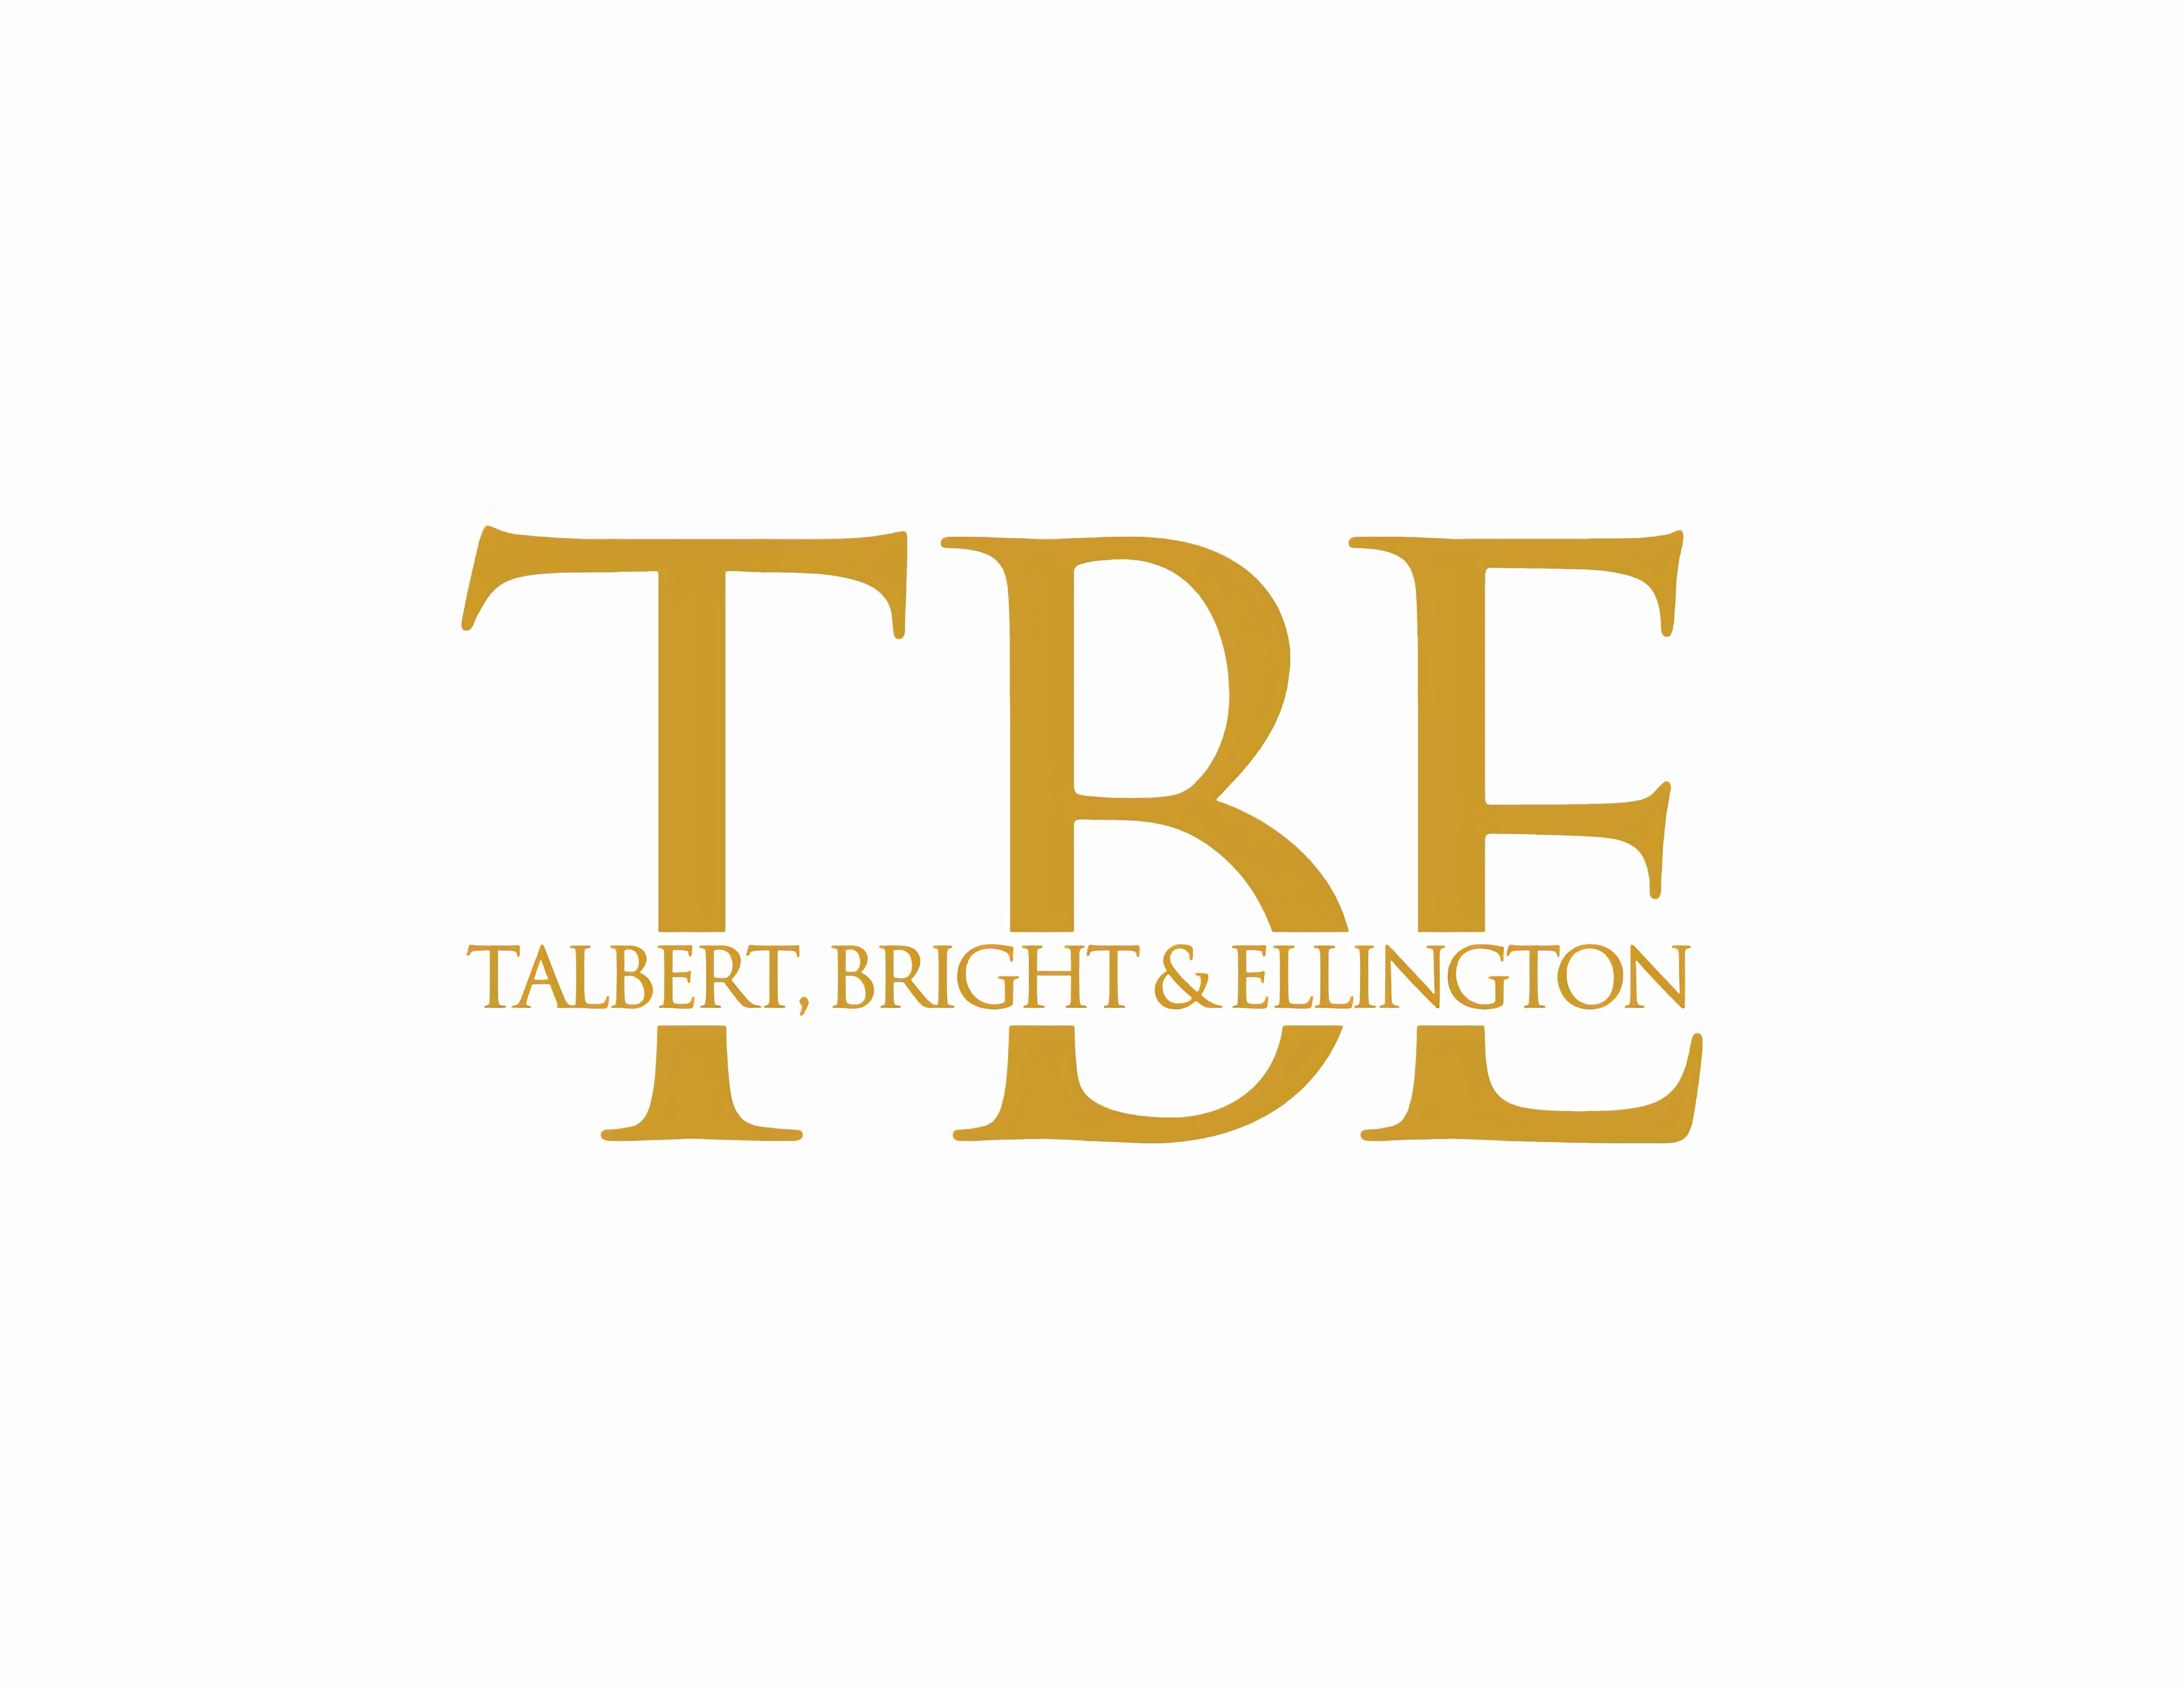 Talbert, Bright & Ellington, Inc.